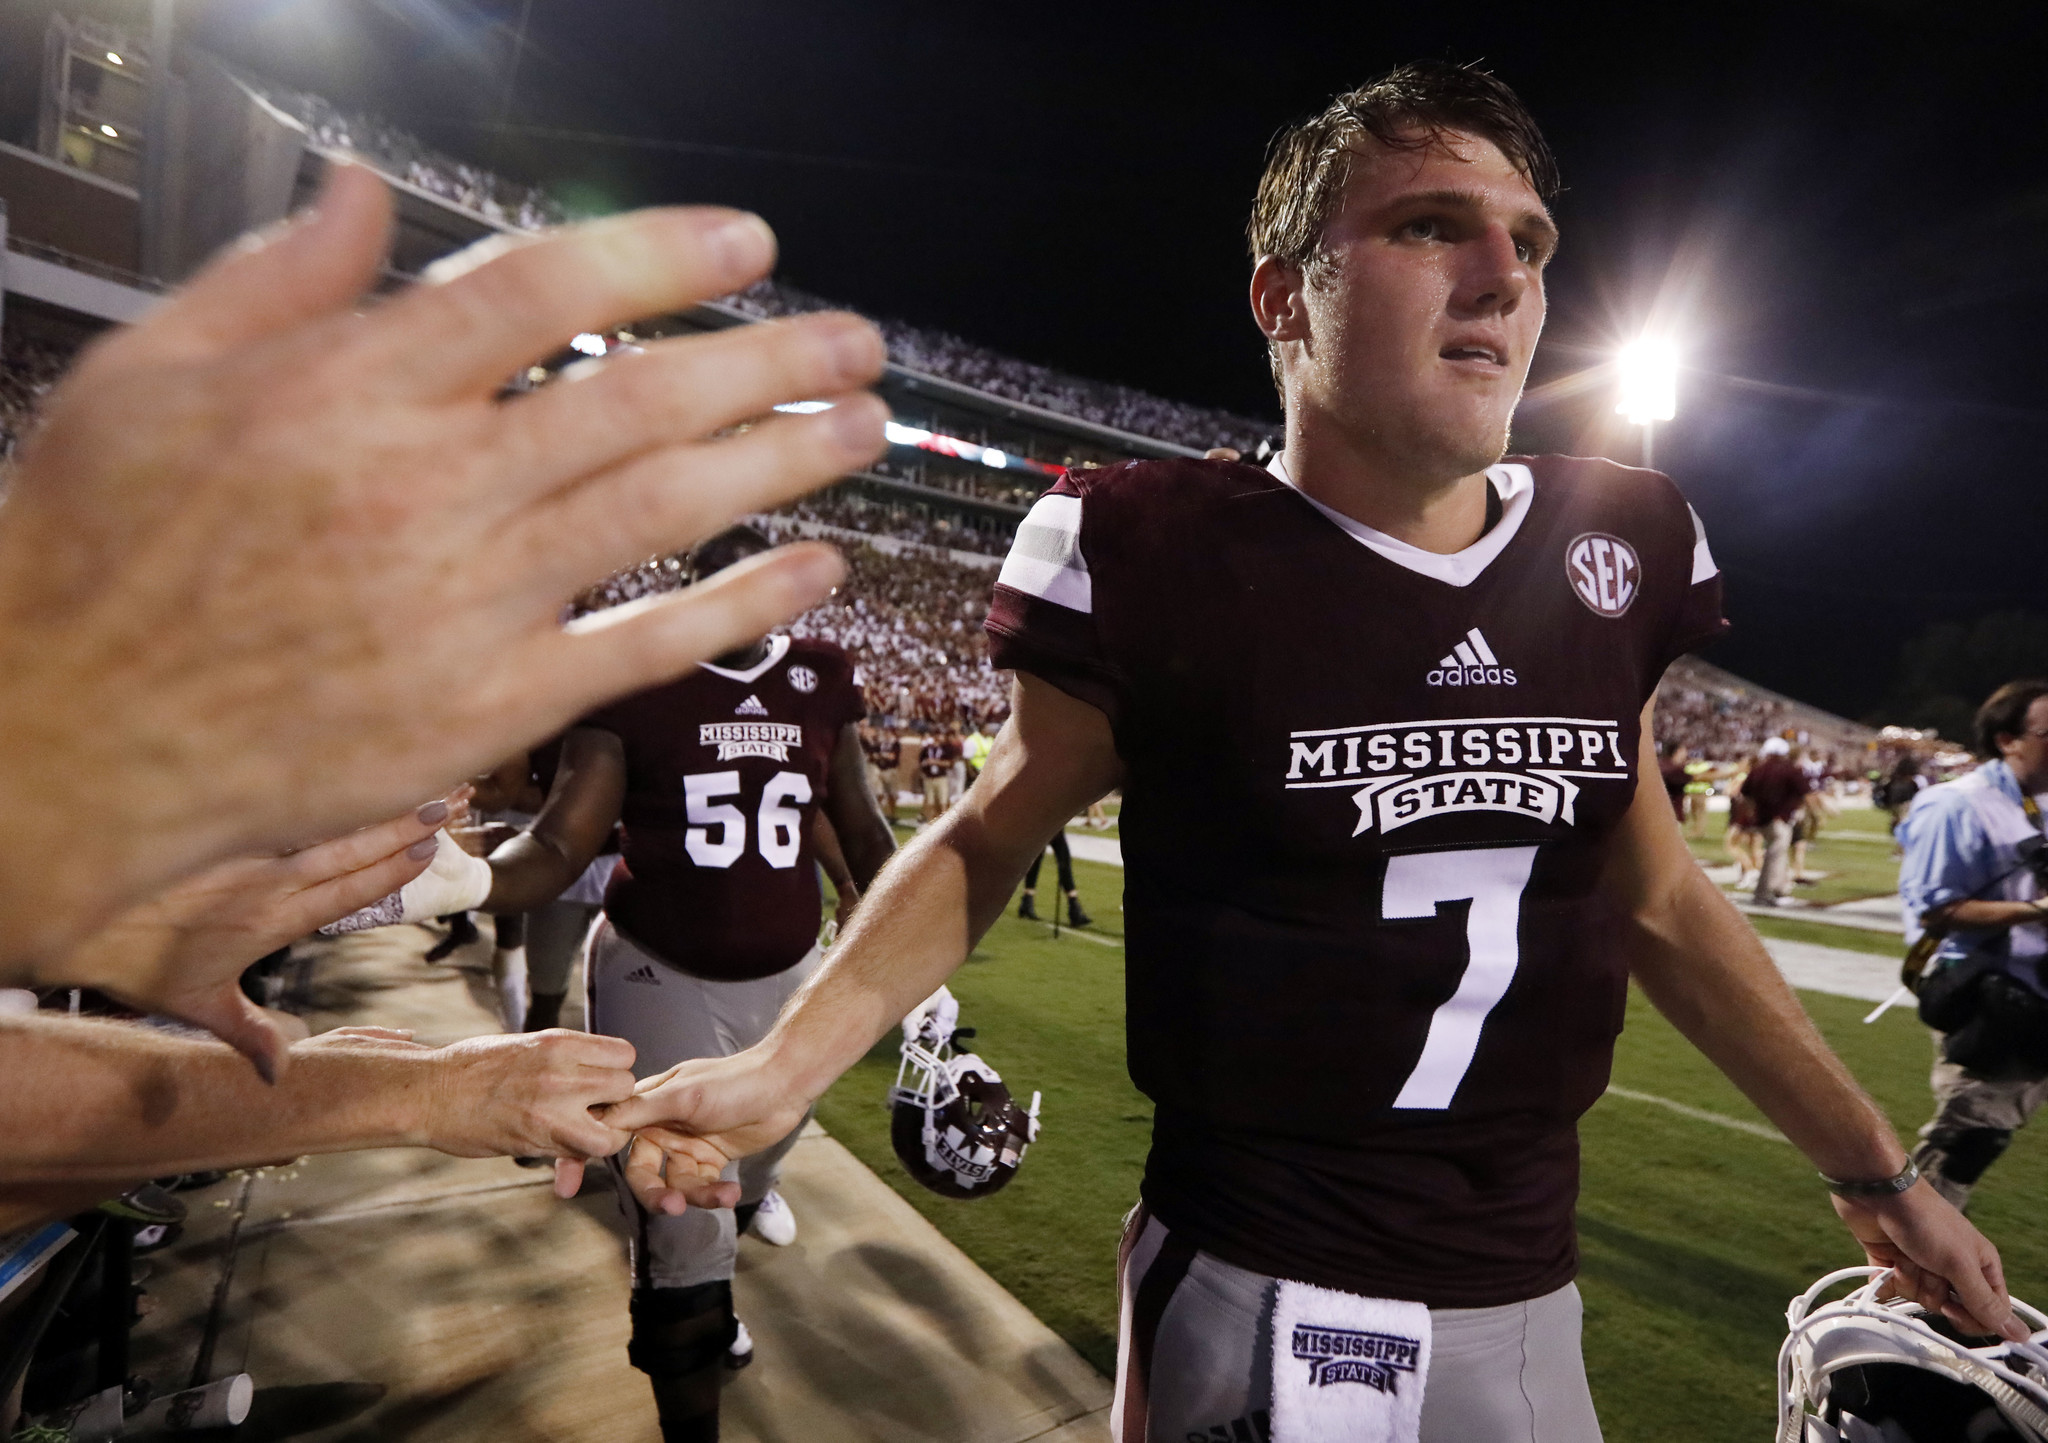 Ct-georgia-mississippi-state-preview-spt-0923-20170922